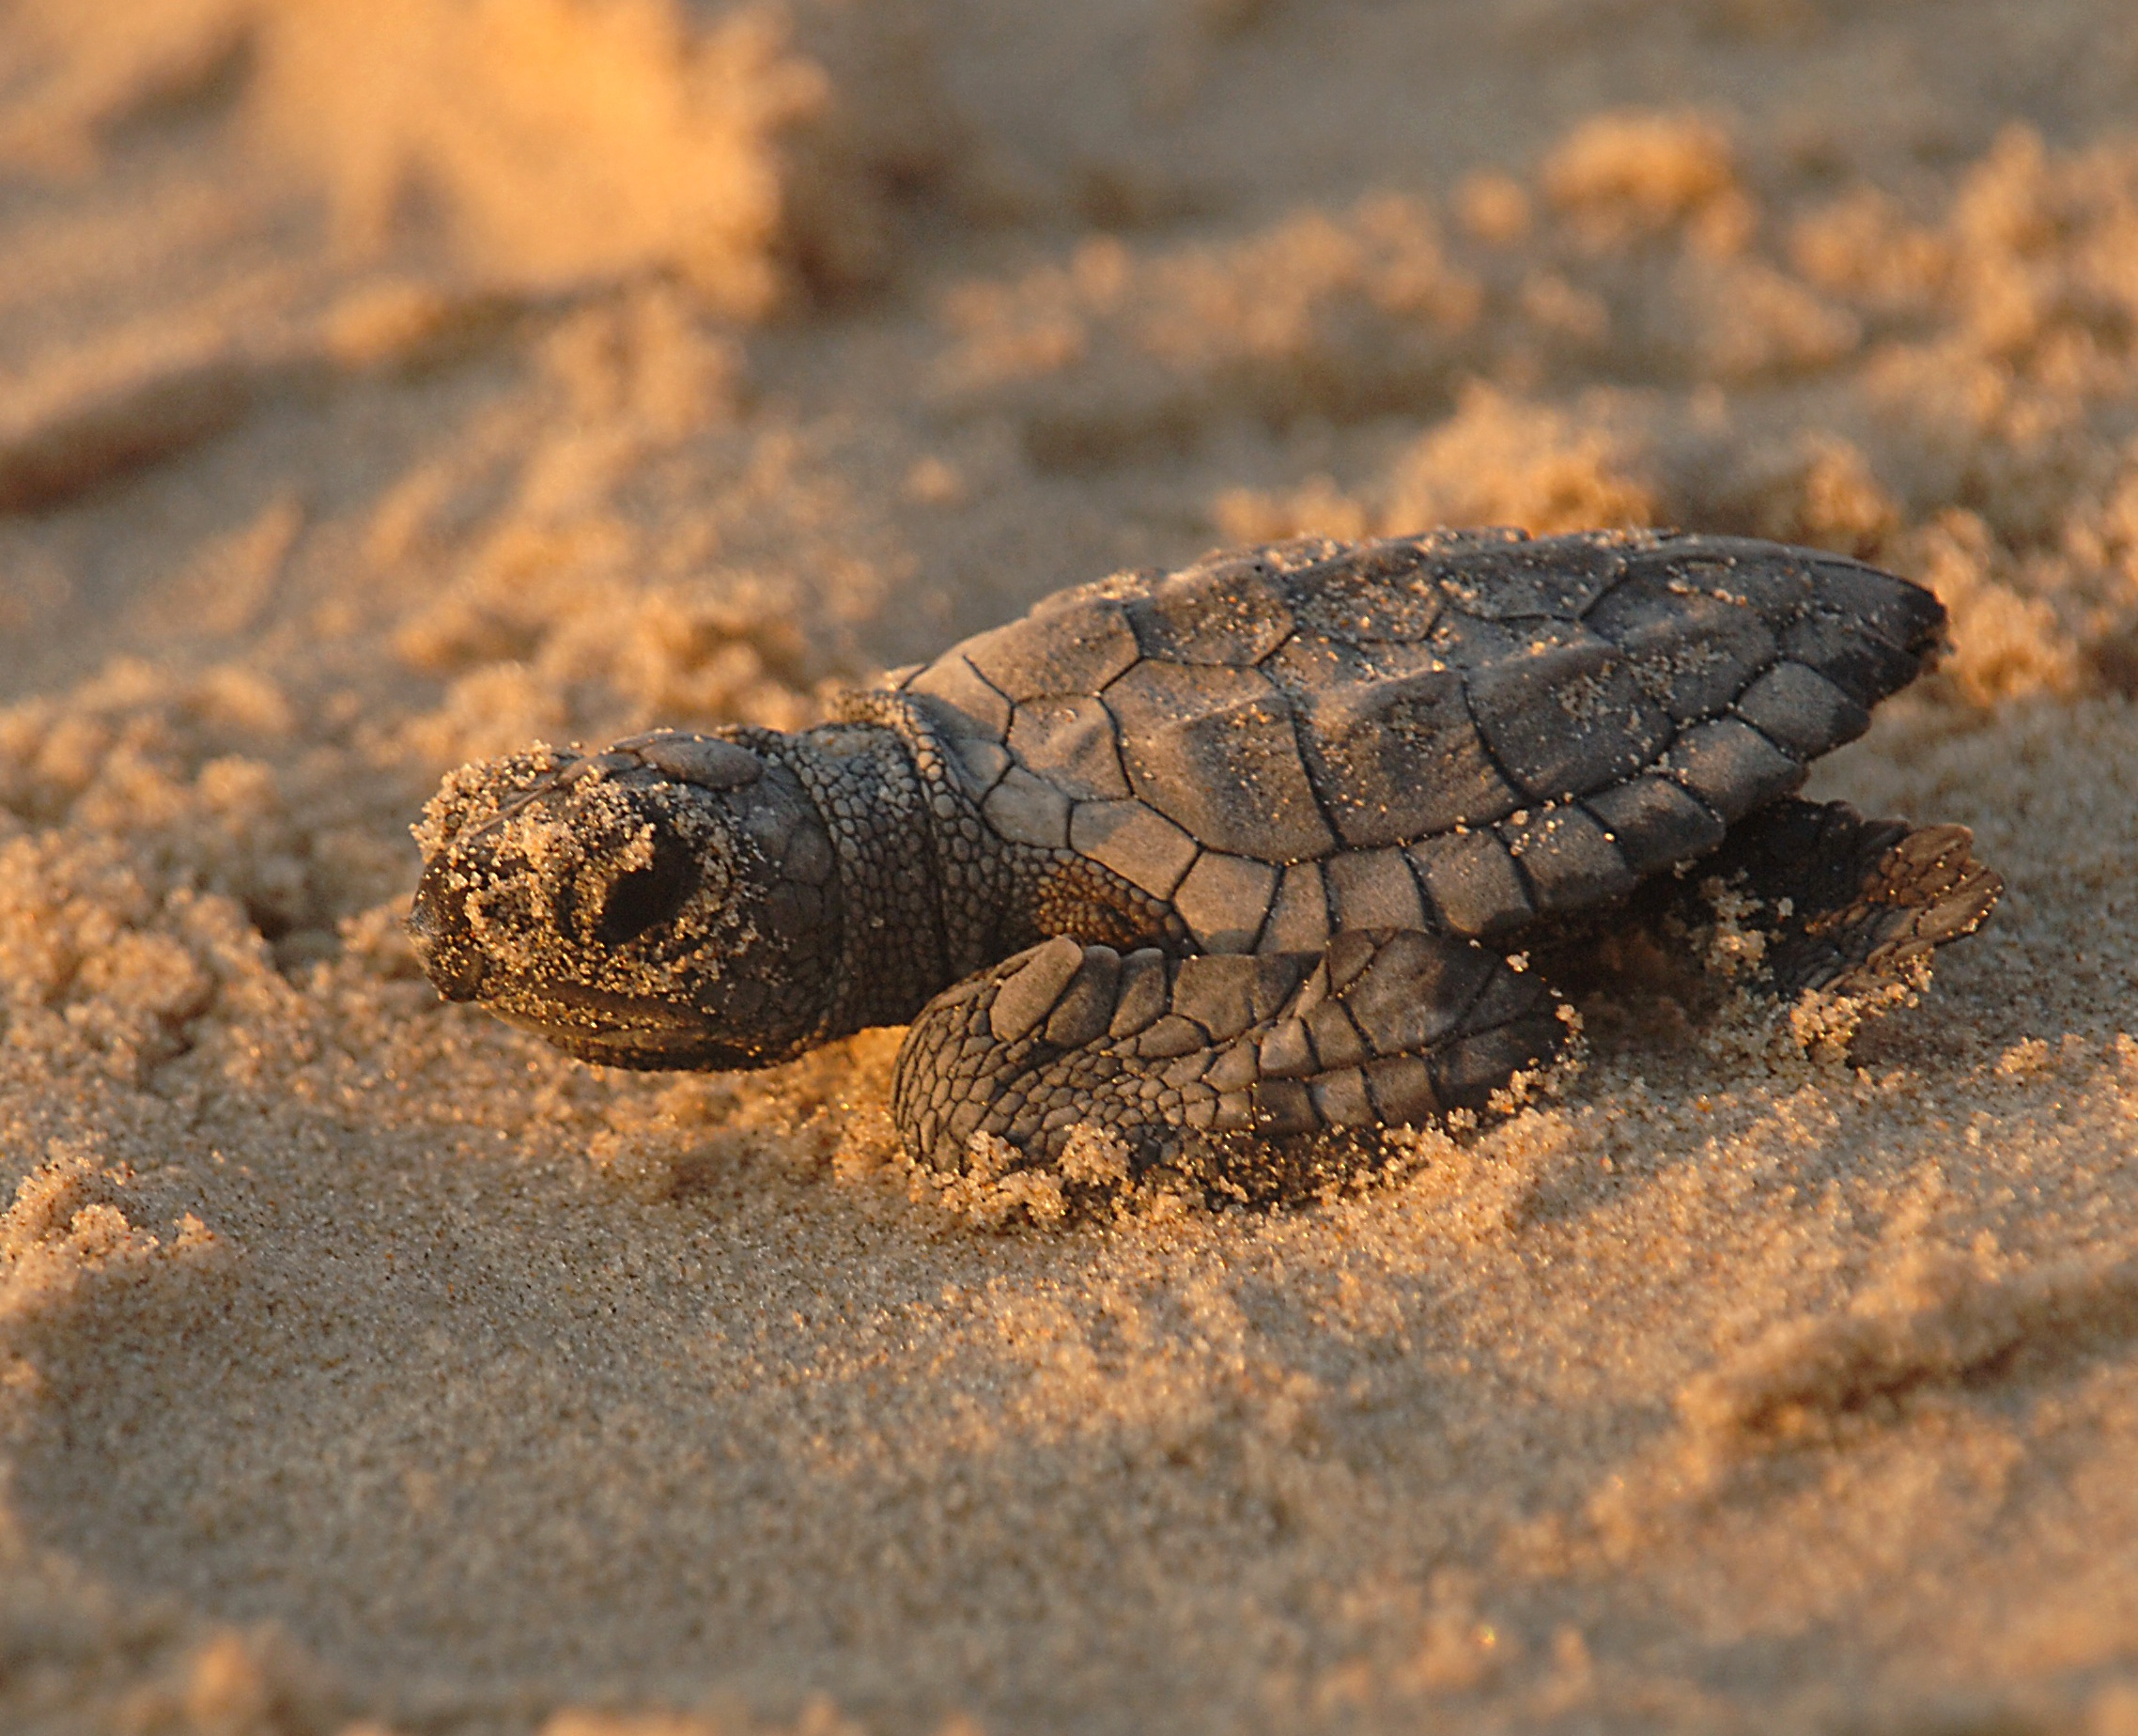 Turtle in the Sand, Animal, Beach, Nature, Sand, HQ Photo